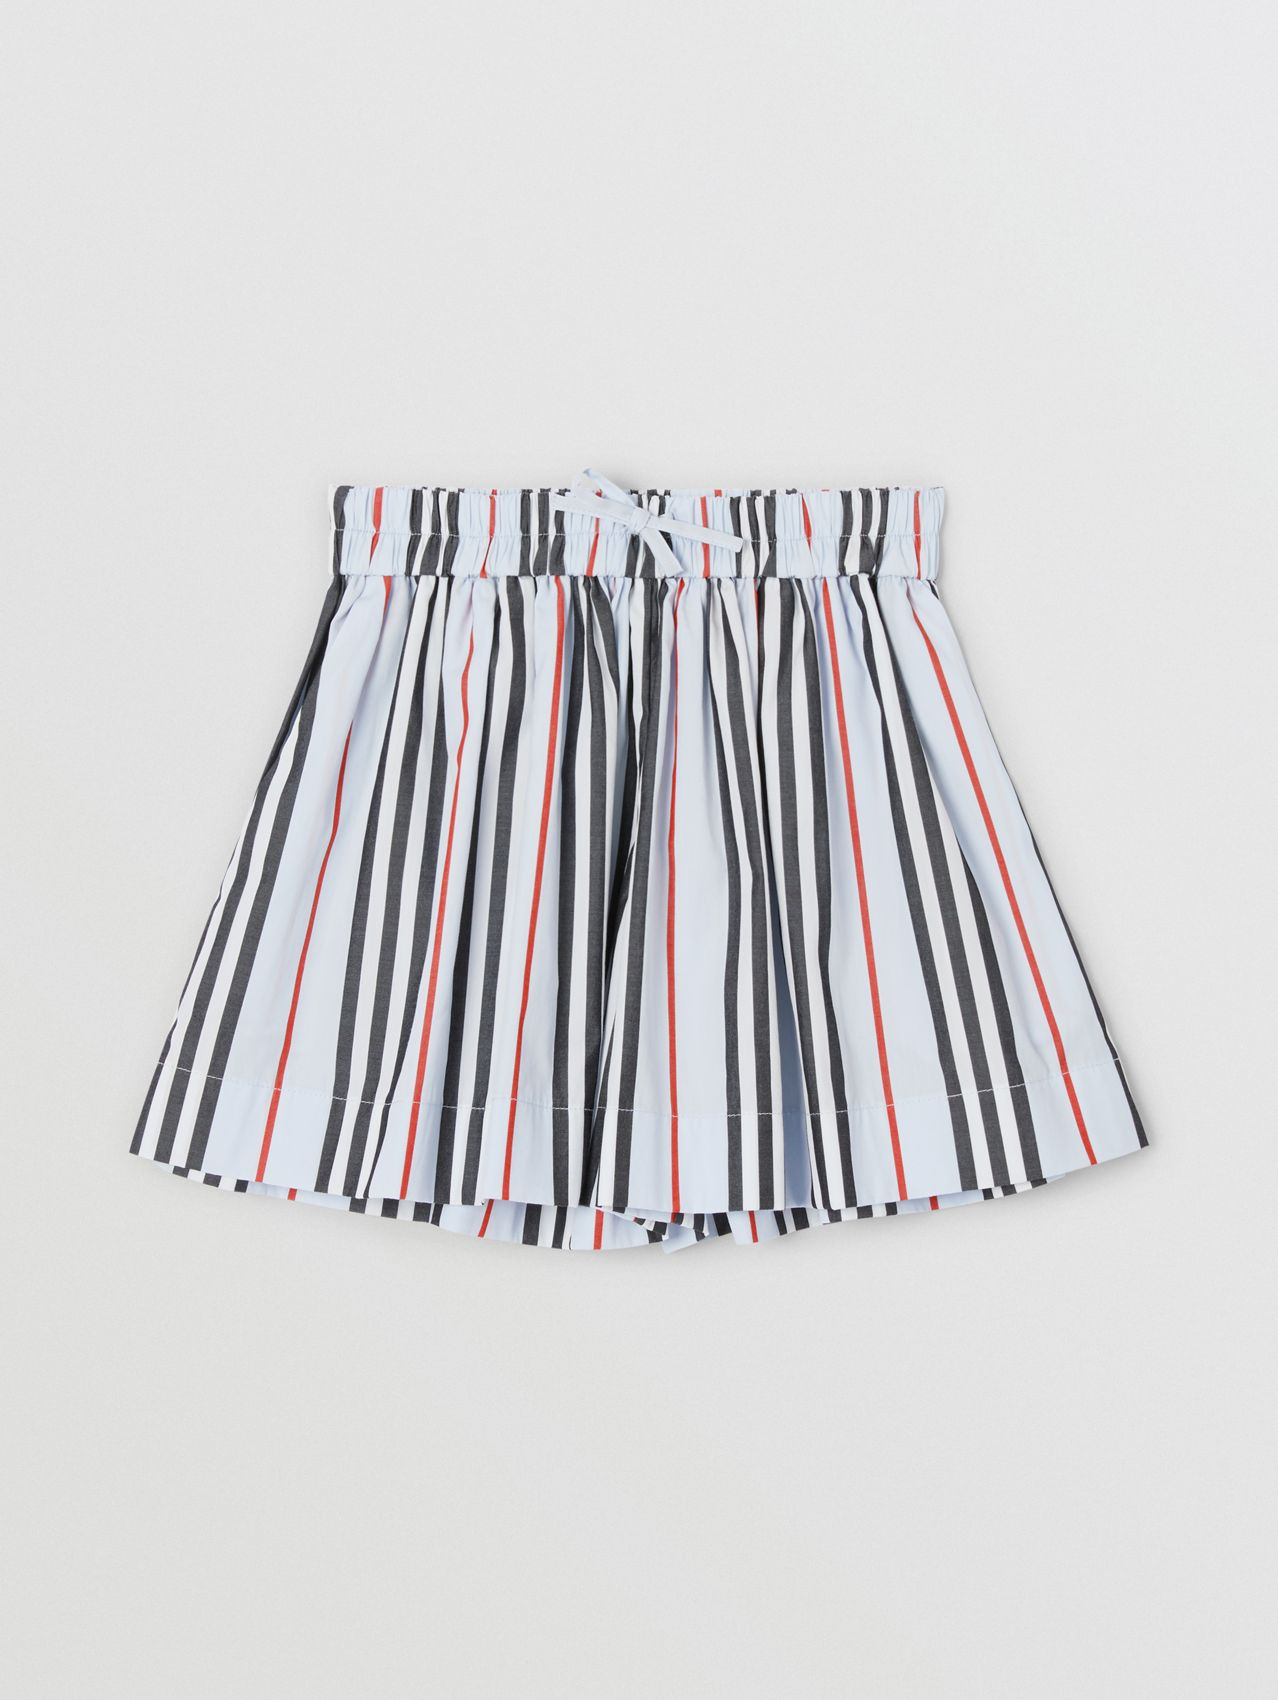 Icon Stripe Cotton Poplin Shorts in Pale Blue